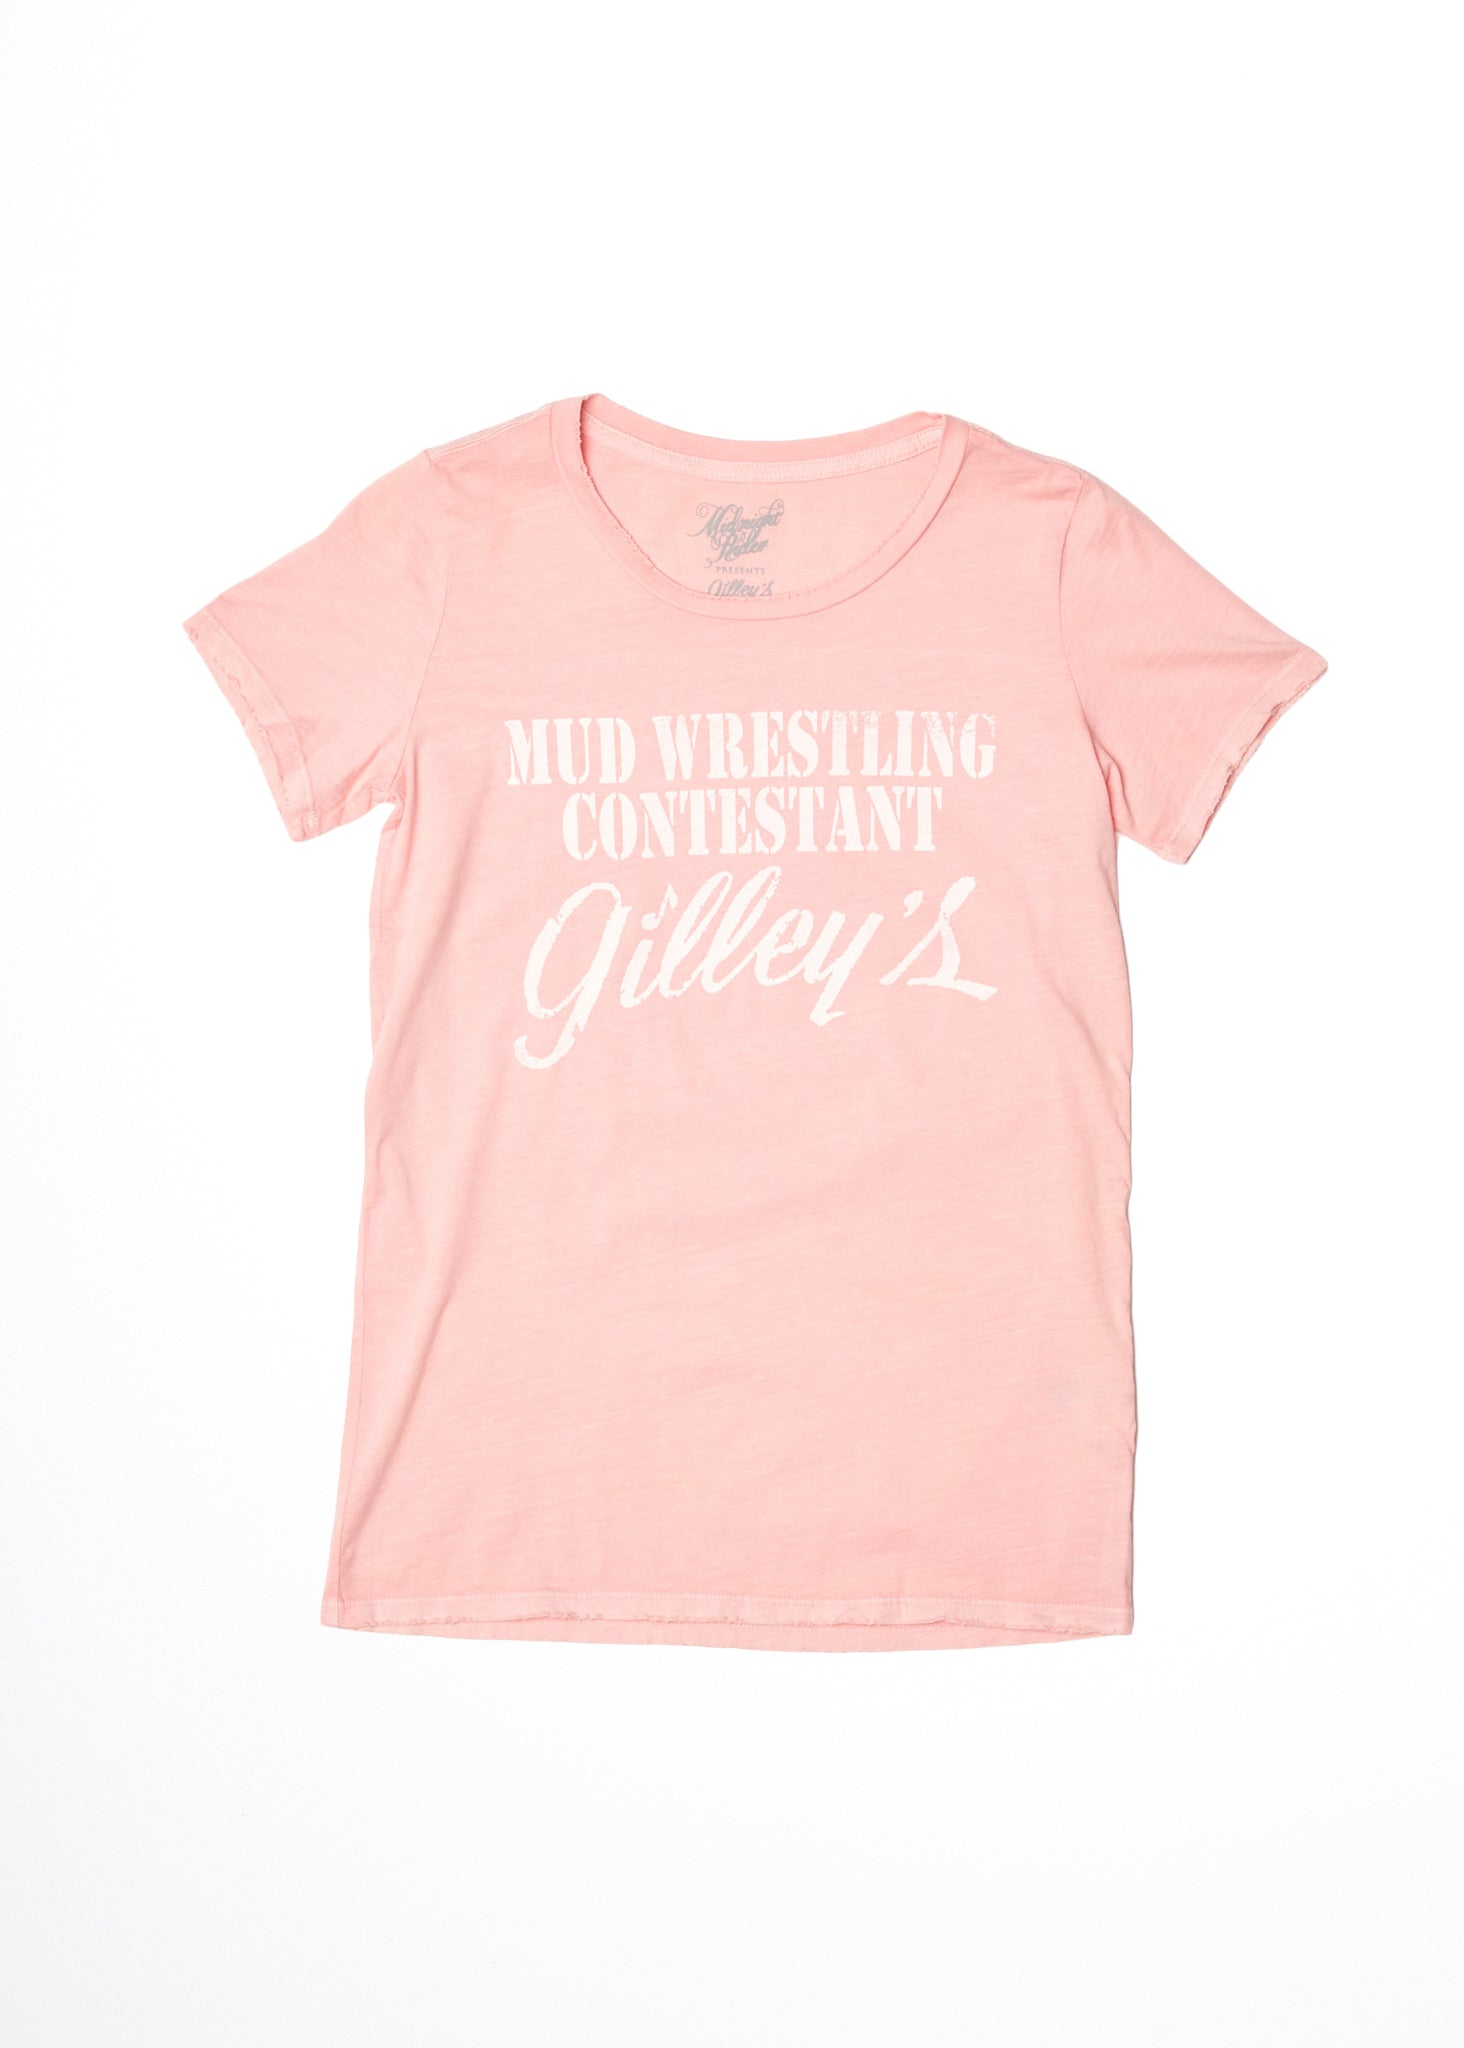 Mud Wrestling Contestant Gilley's Women's Tee Shirt